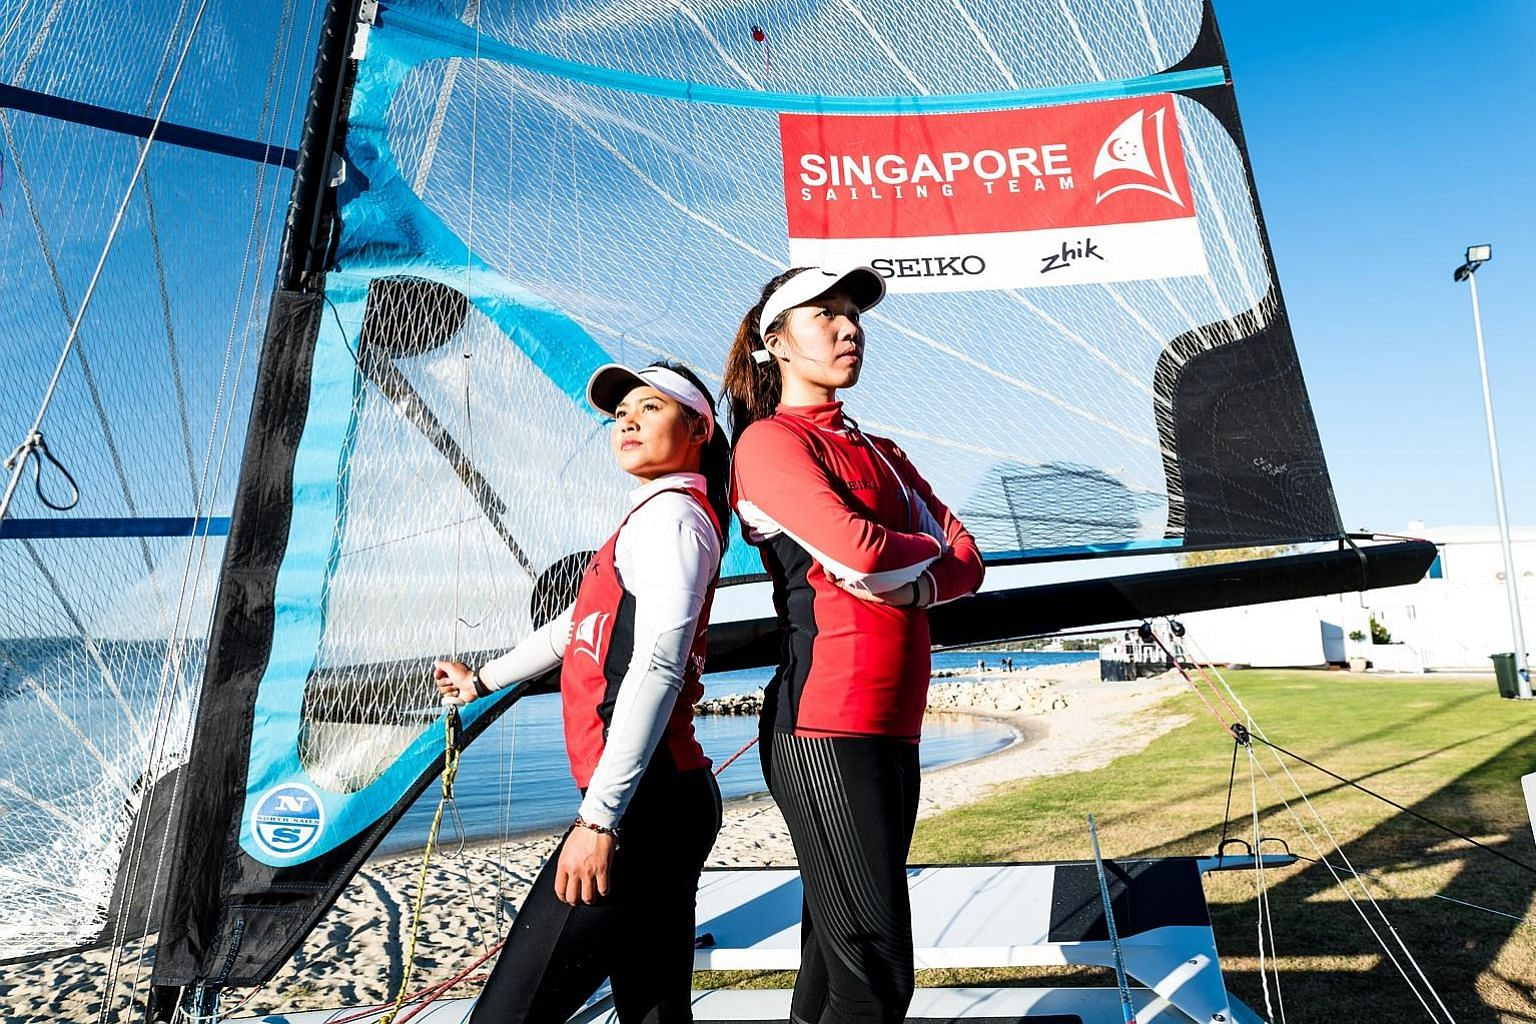 Griselda Khng (far left) and new partner Olivia Chen are targeting a push for the Tokyo Olympics on the 49erFX and will dive into full-time training in the new year. Helmsman Khng's former crew Sara Tan is focusing on finishing her studies at SMU.